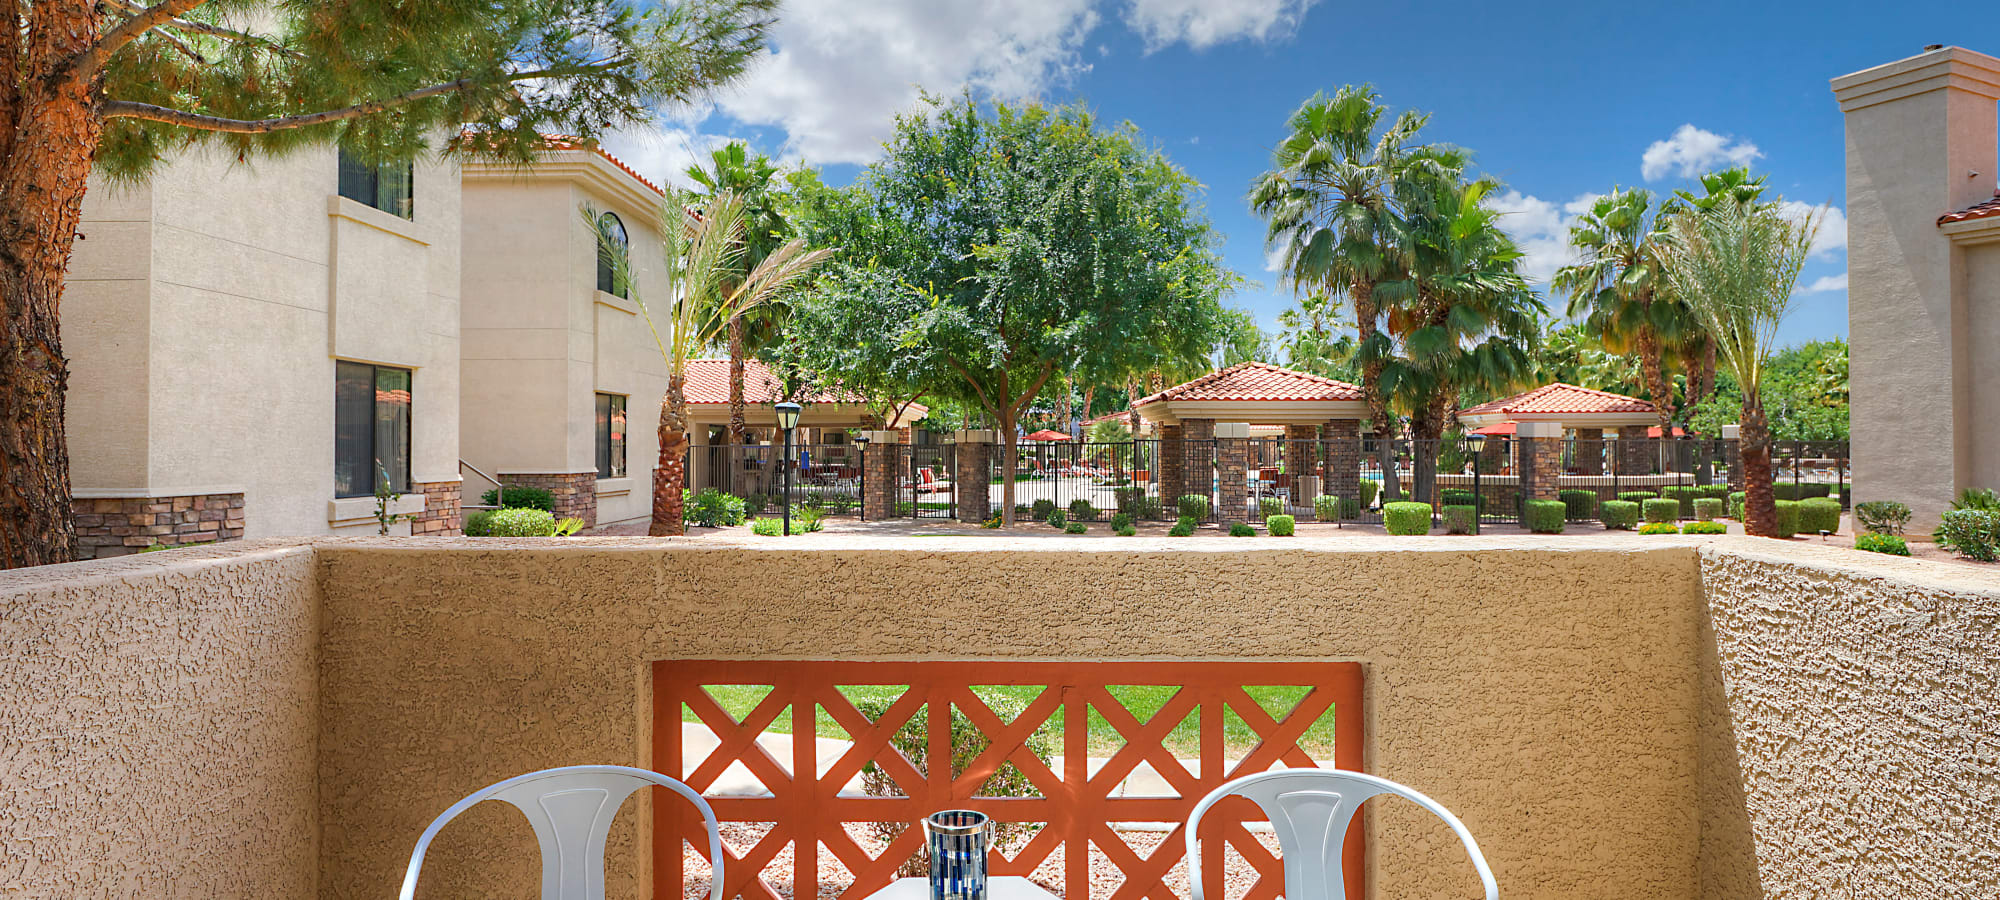 Private balcony outside apartment home at San Palacio in Chandler, Arizona